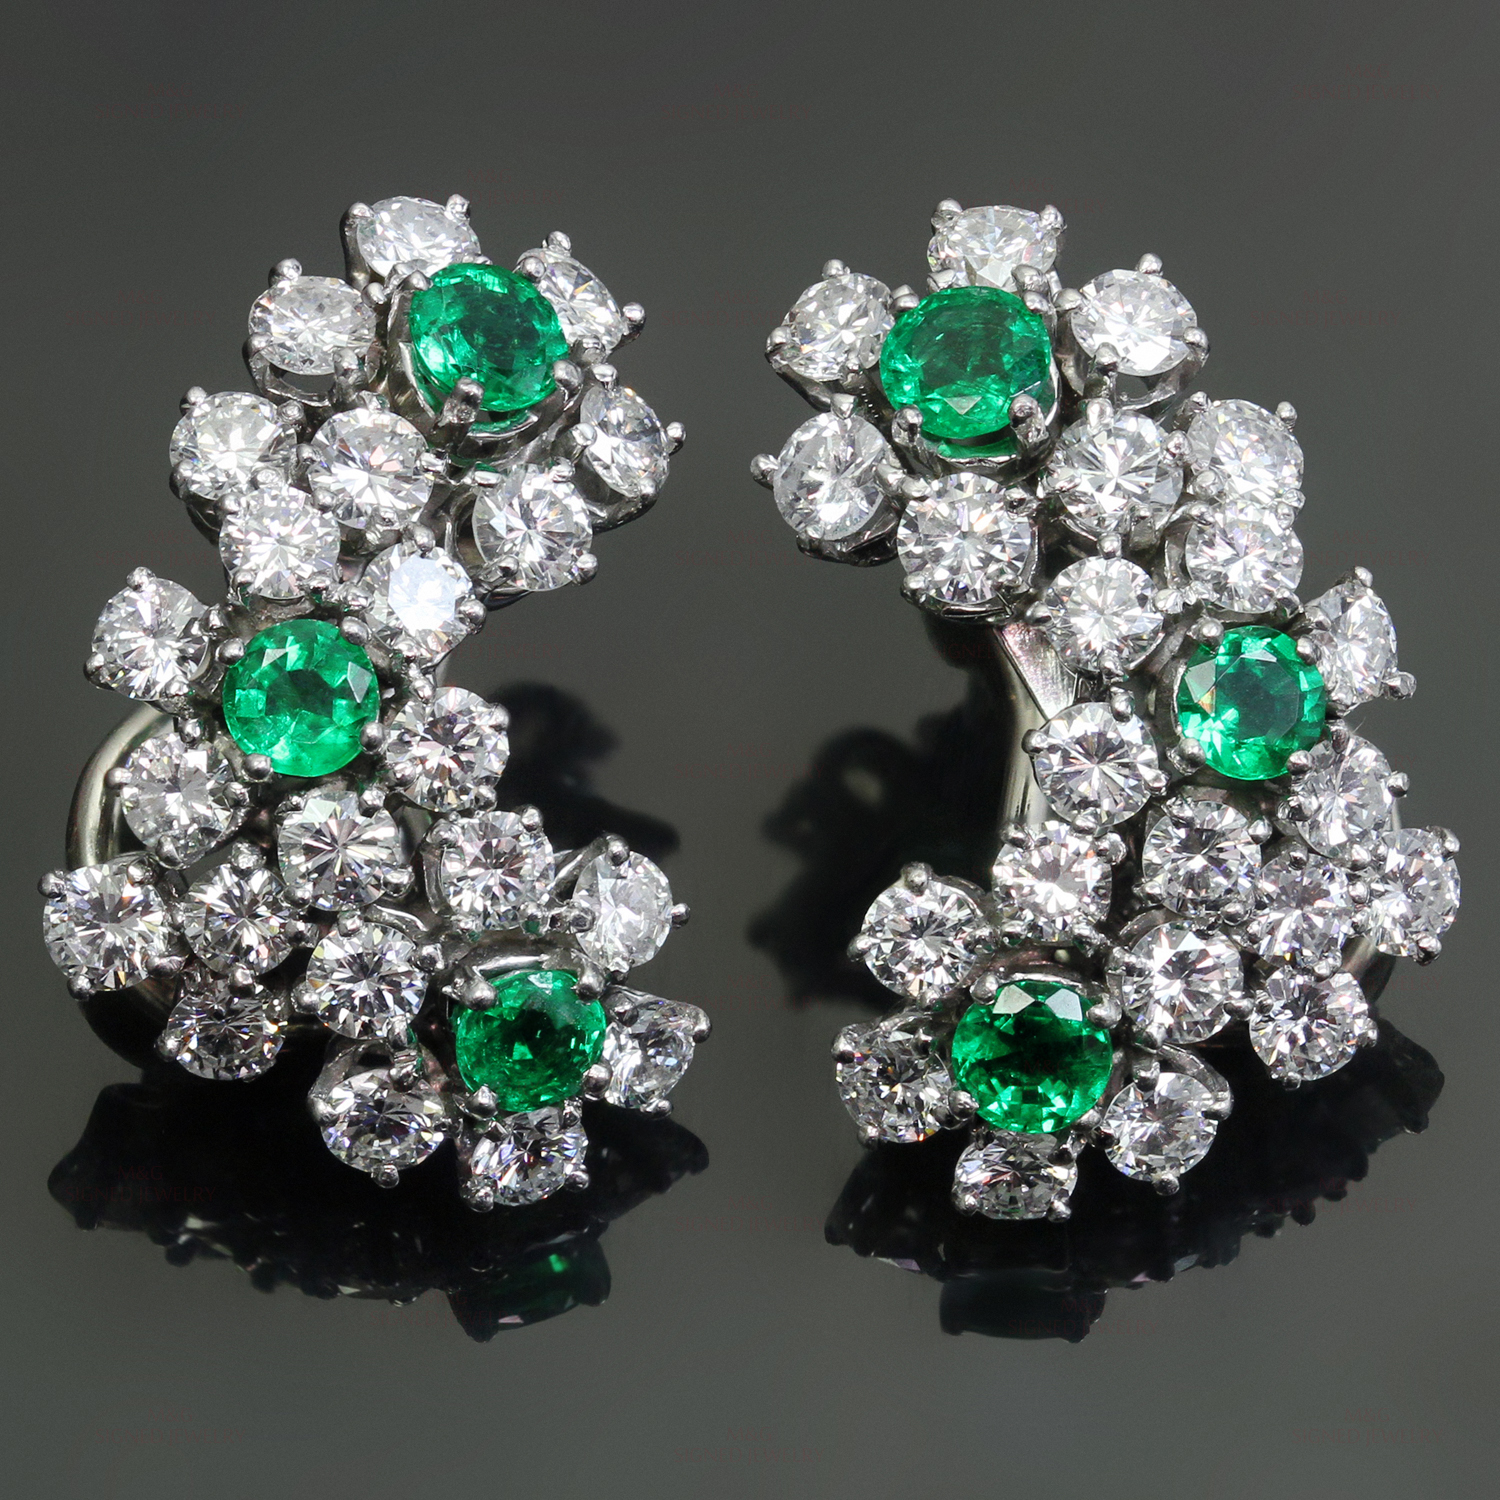 TIFFANY & CO. Diamond Emerald Platinum Clip-on Earrings